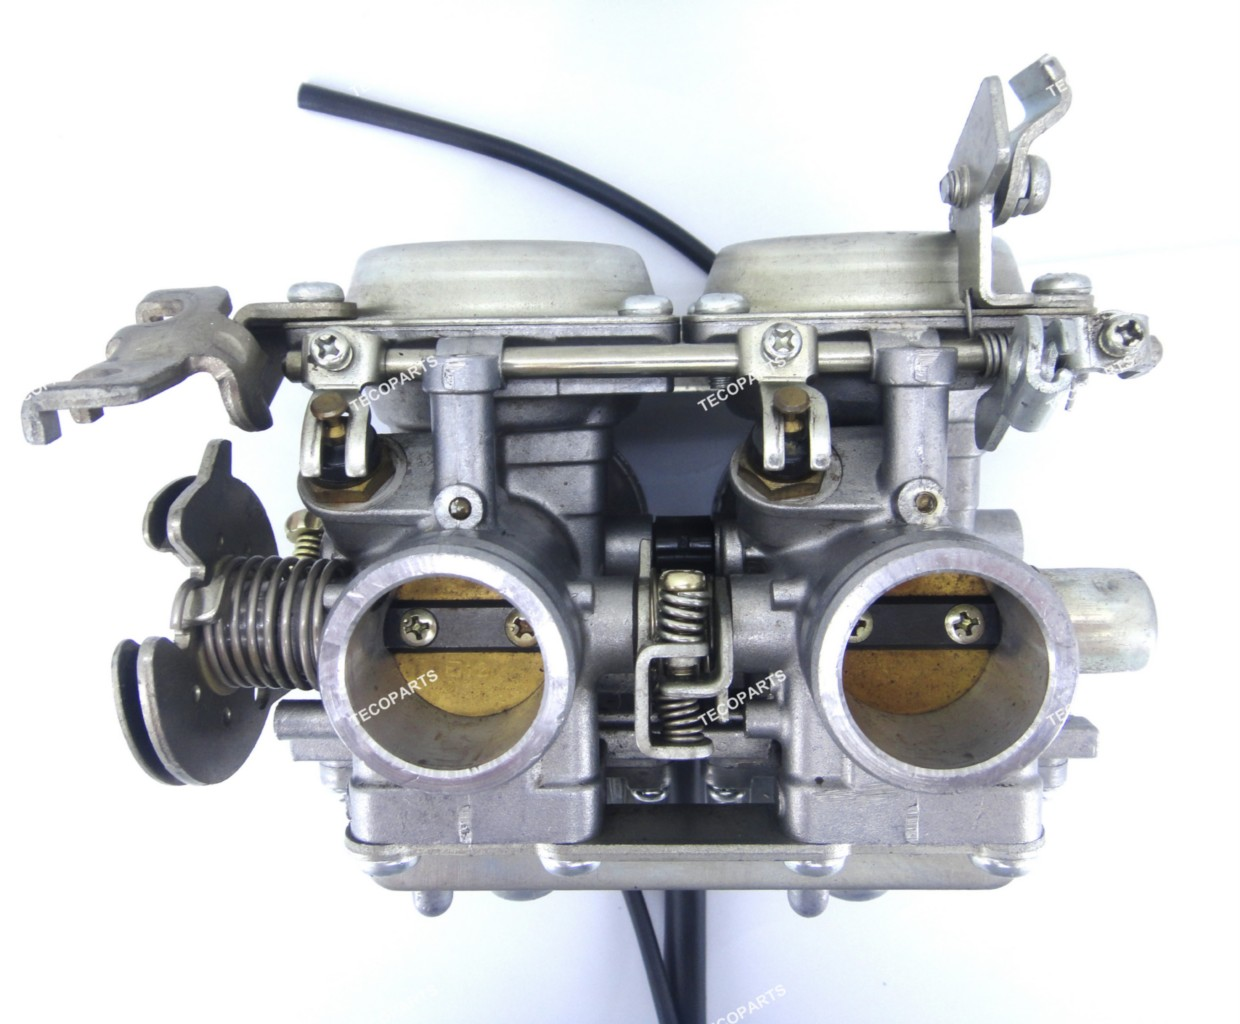 genuine mikuni corp twin carburetor carb bs26 b55 made in japan for honda cb125t ebay. Black Bedroom Furniture Sets. Home Design Ideas